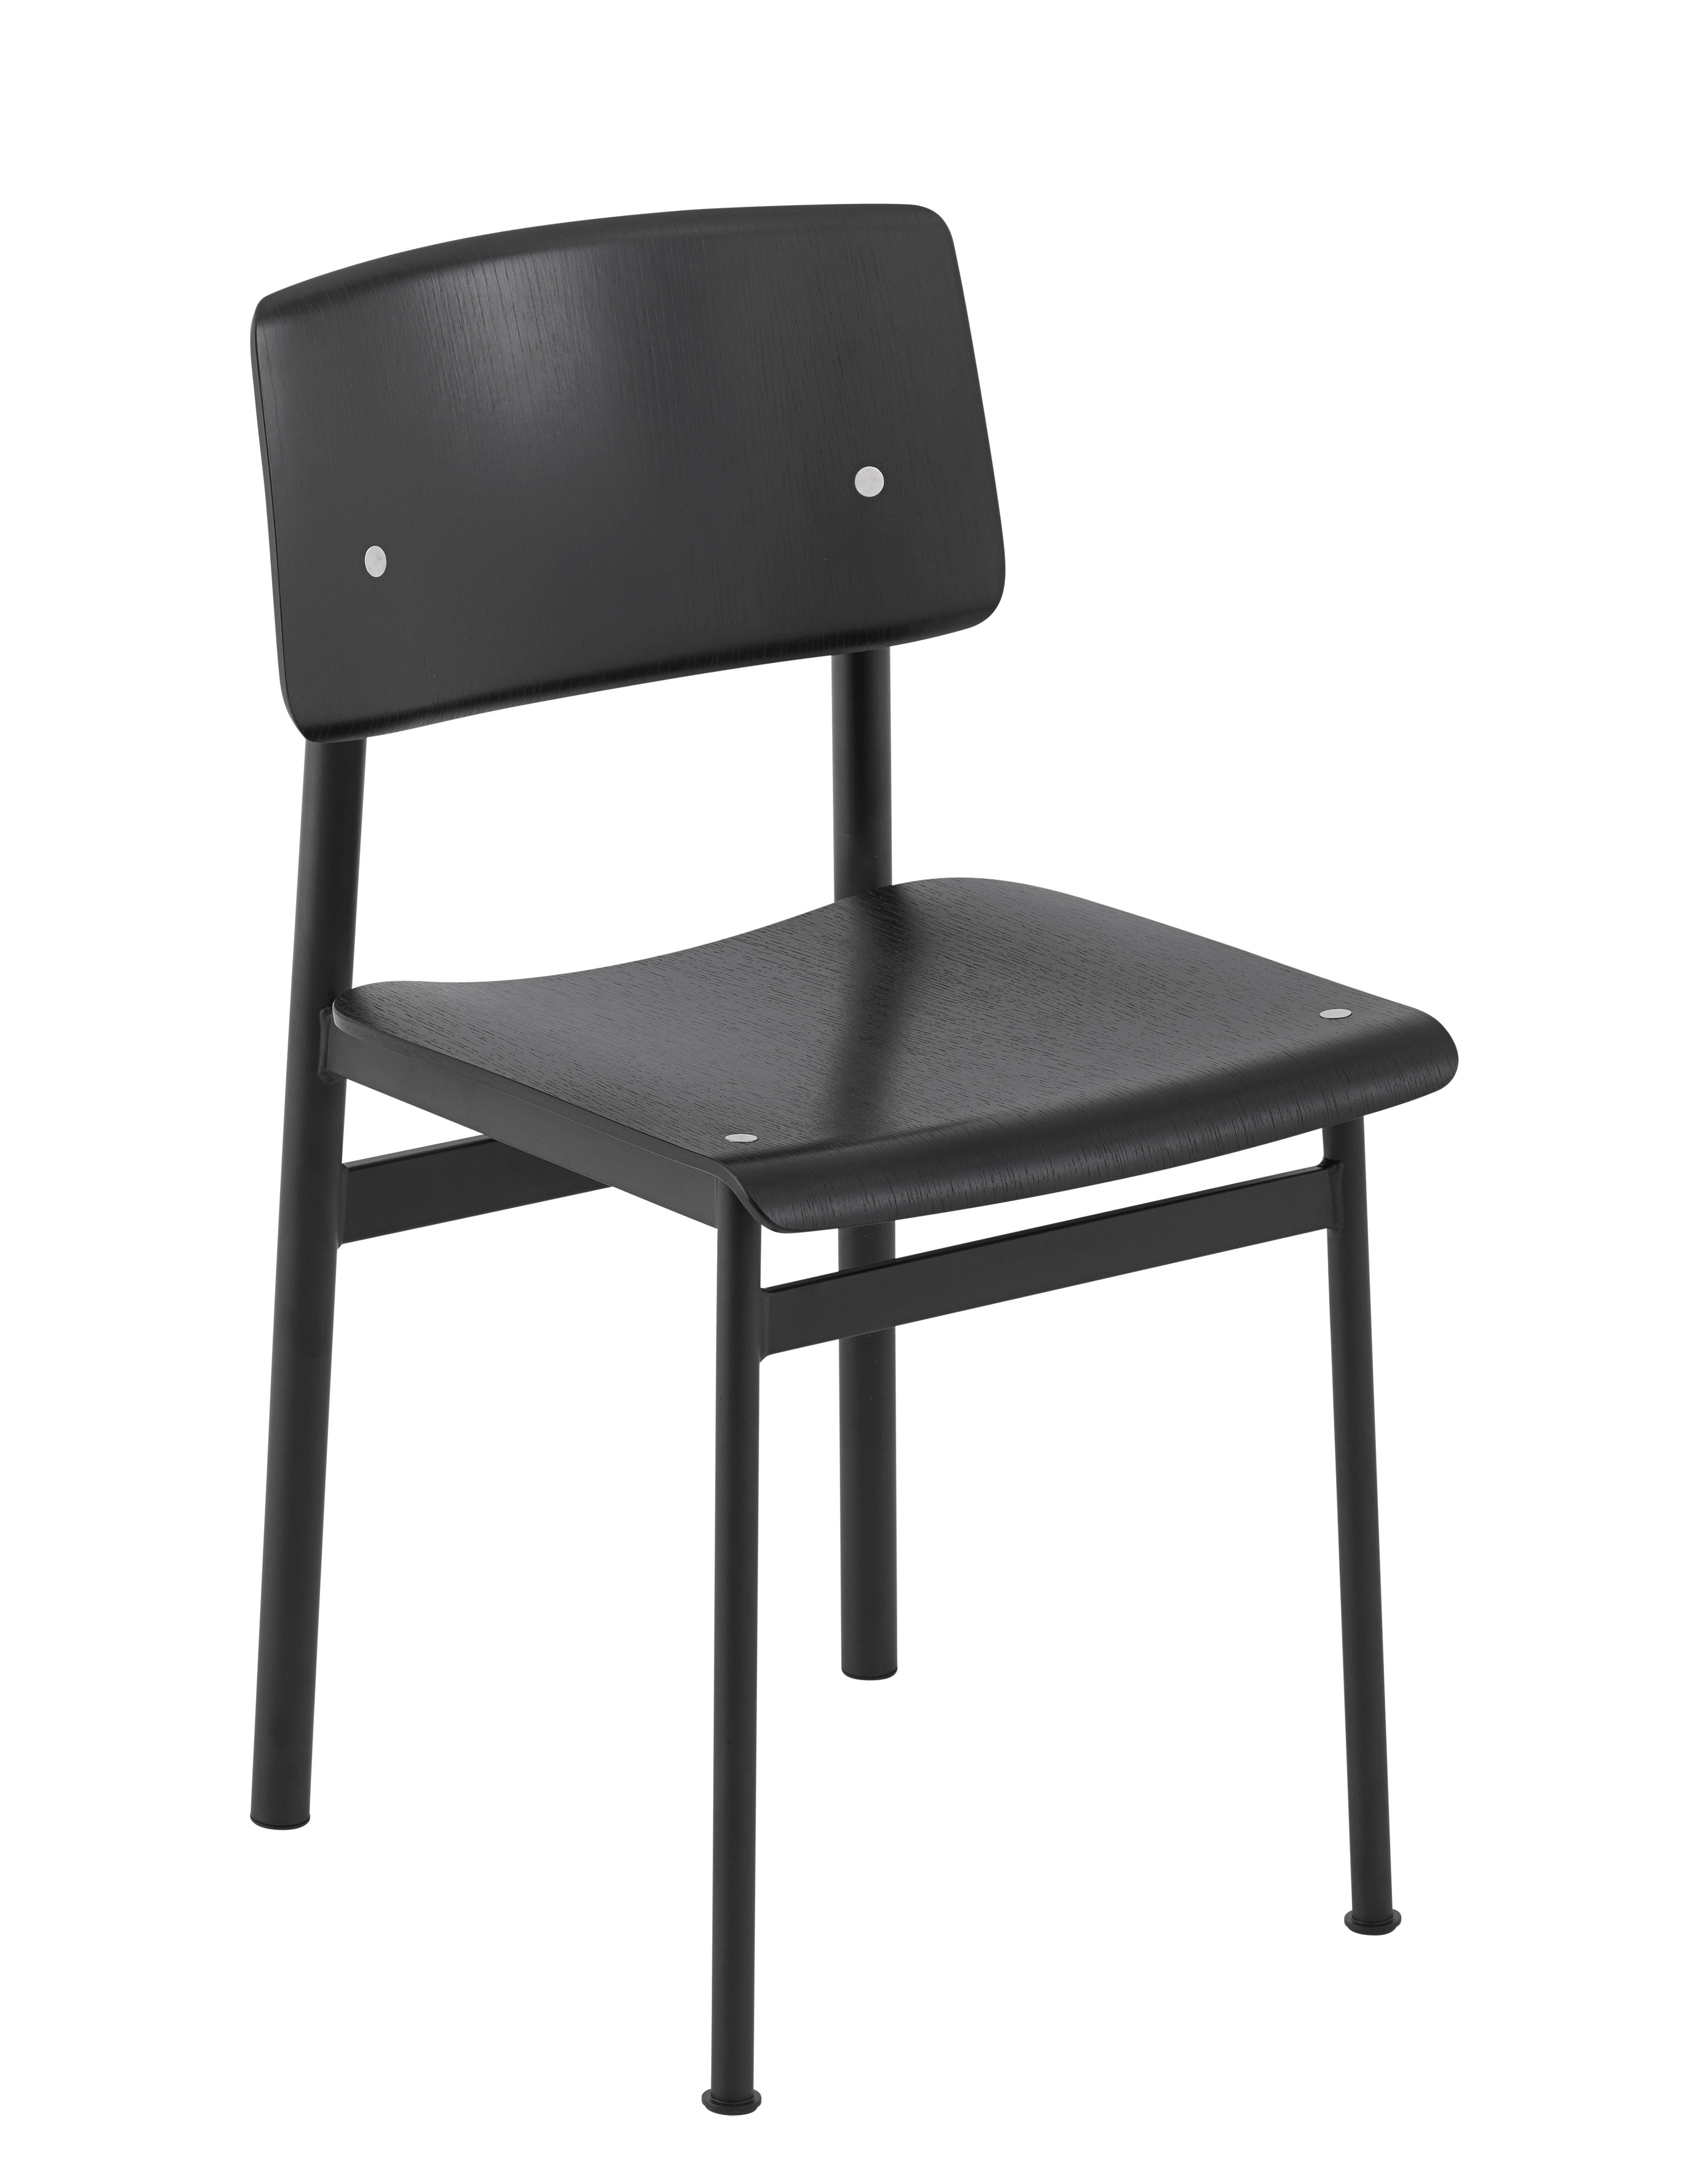 Furniture - Chairs - Loft Chair - / Wood & metal by Muuto - Black / Black - Epoxy lacquered steel, Tinted oak plywood